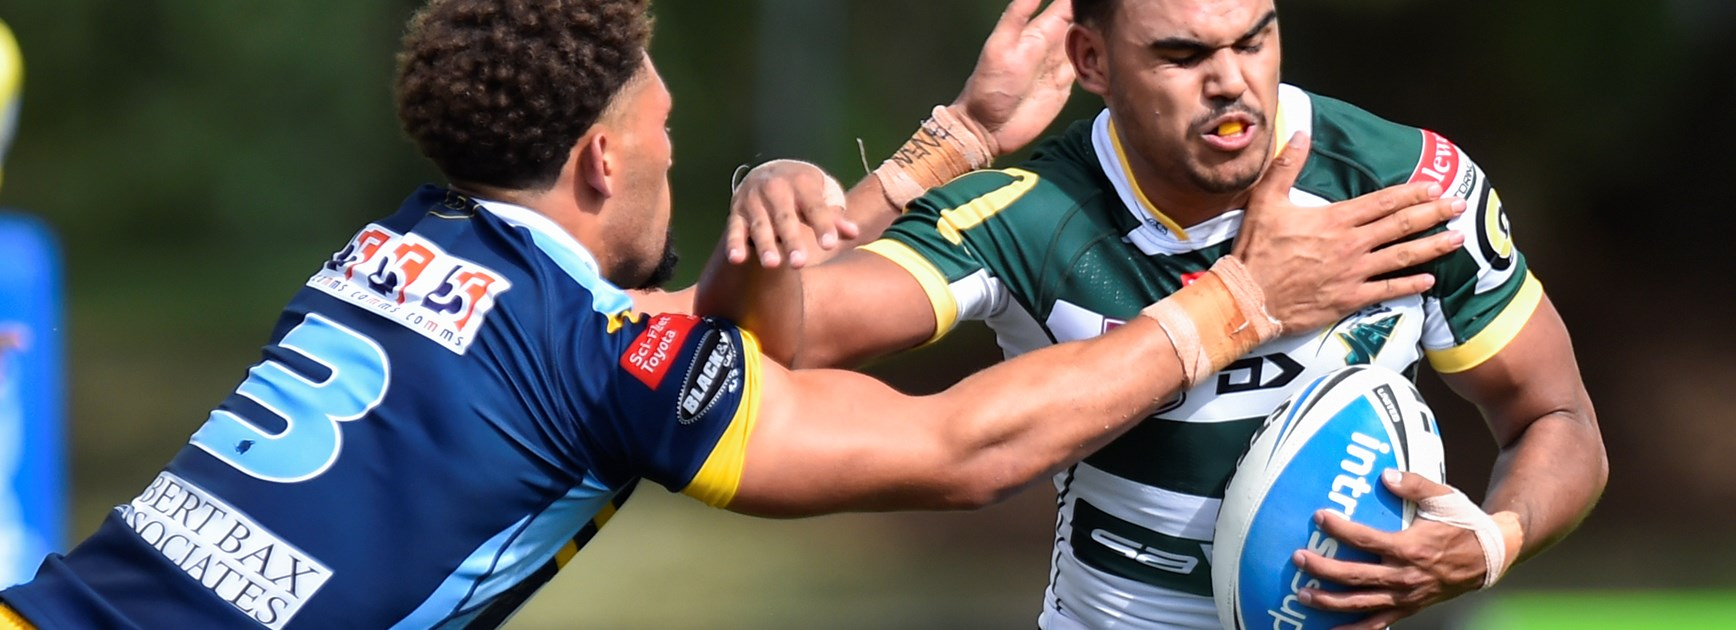 Intrust Super Cup: intriguing, interesting, exciting and relevant